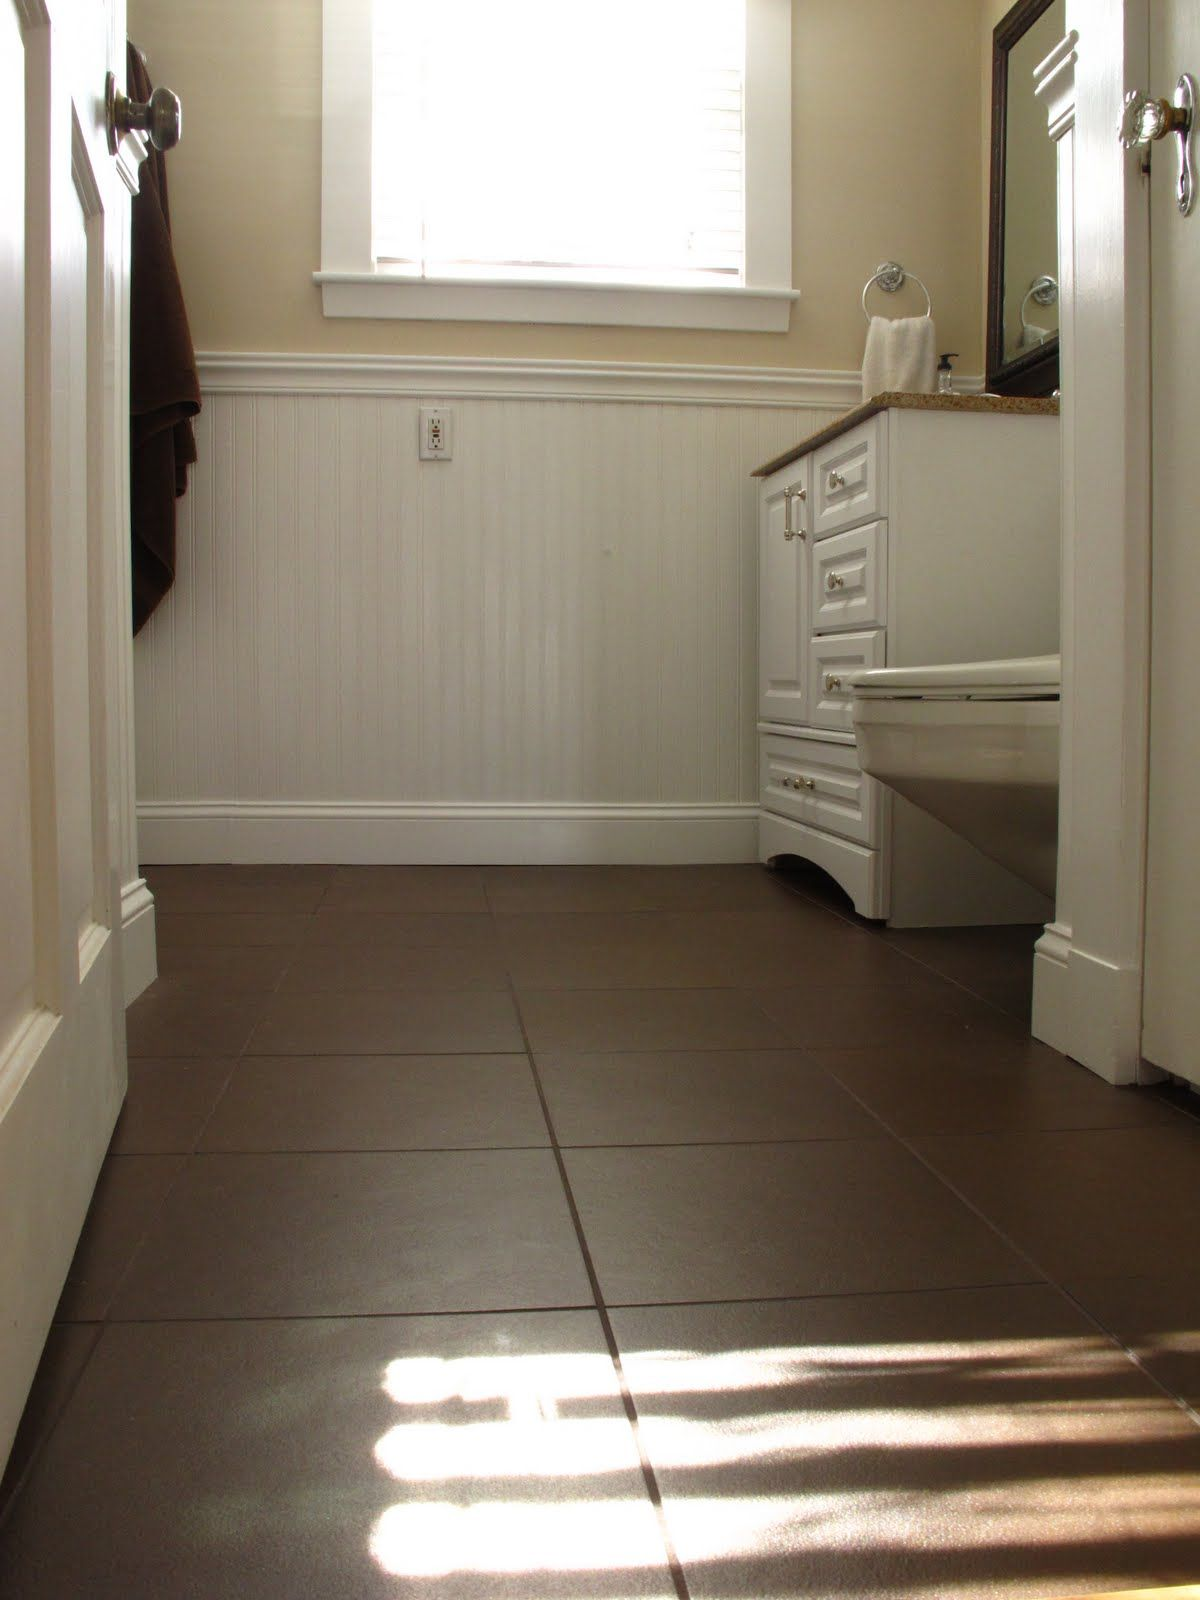 Dark Floor Tile dark brown tile in bathroom floor. white subway tile in tub